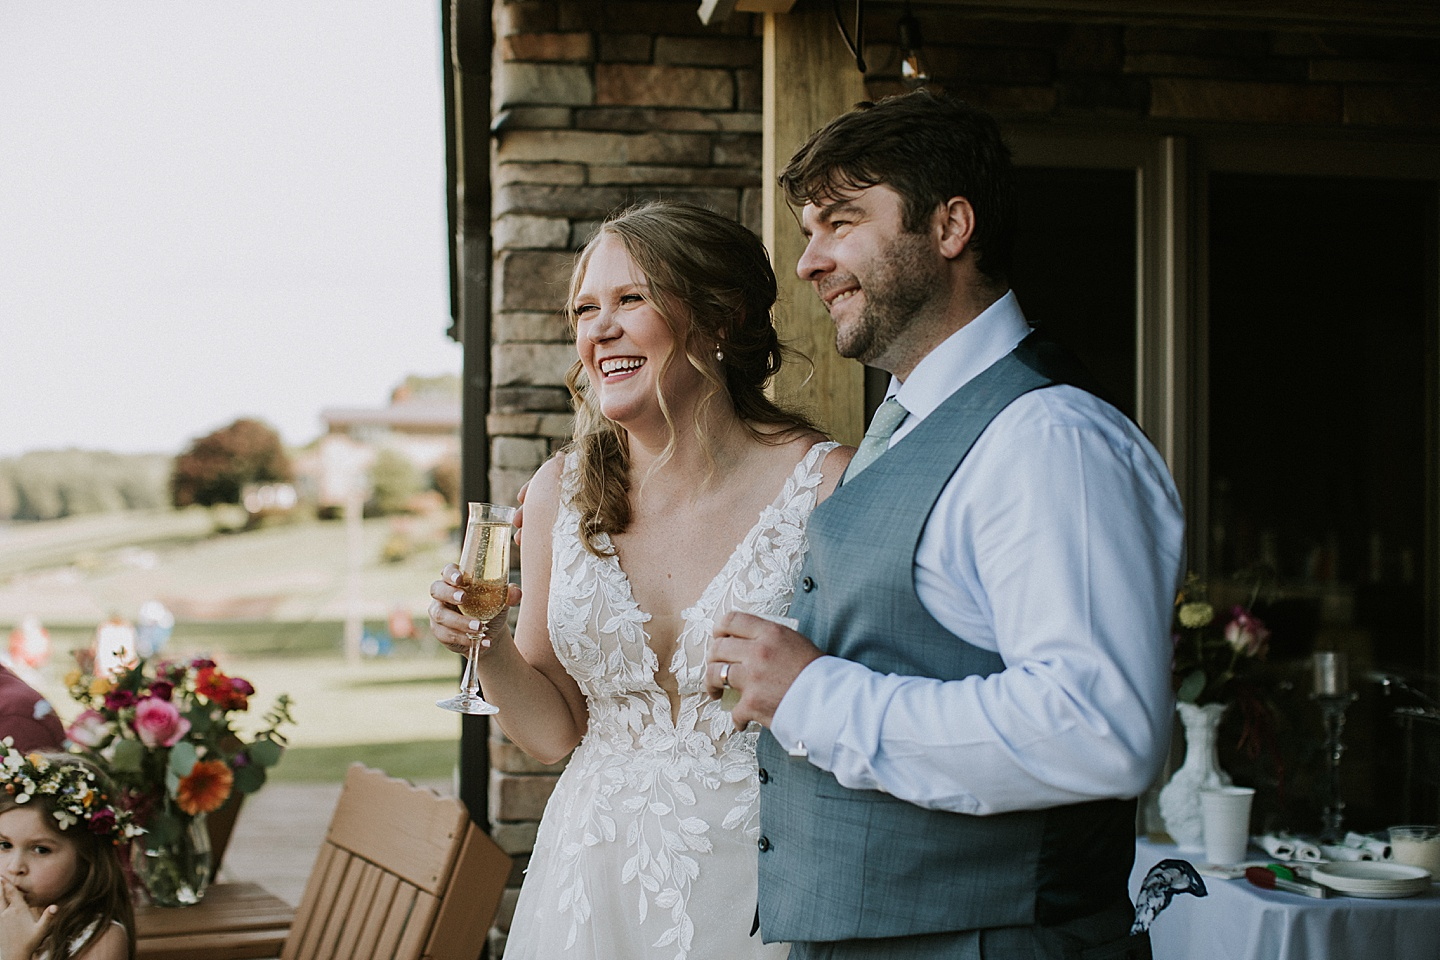 Bride and groom smiling during toasts